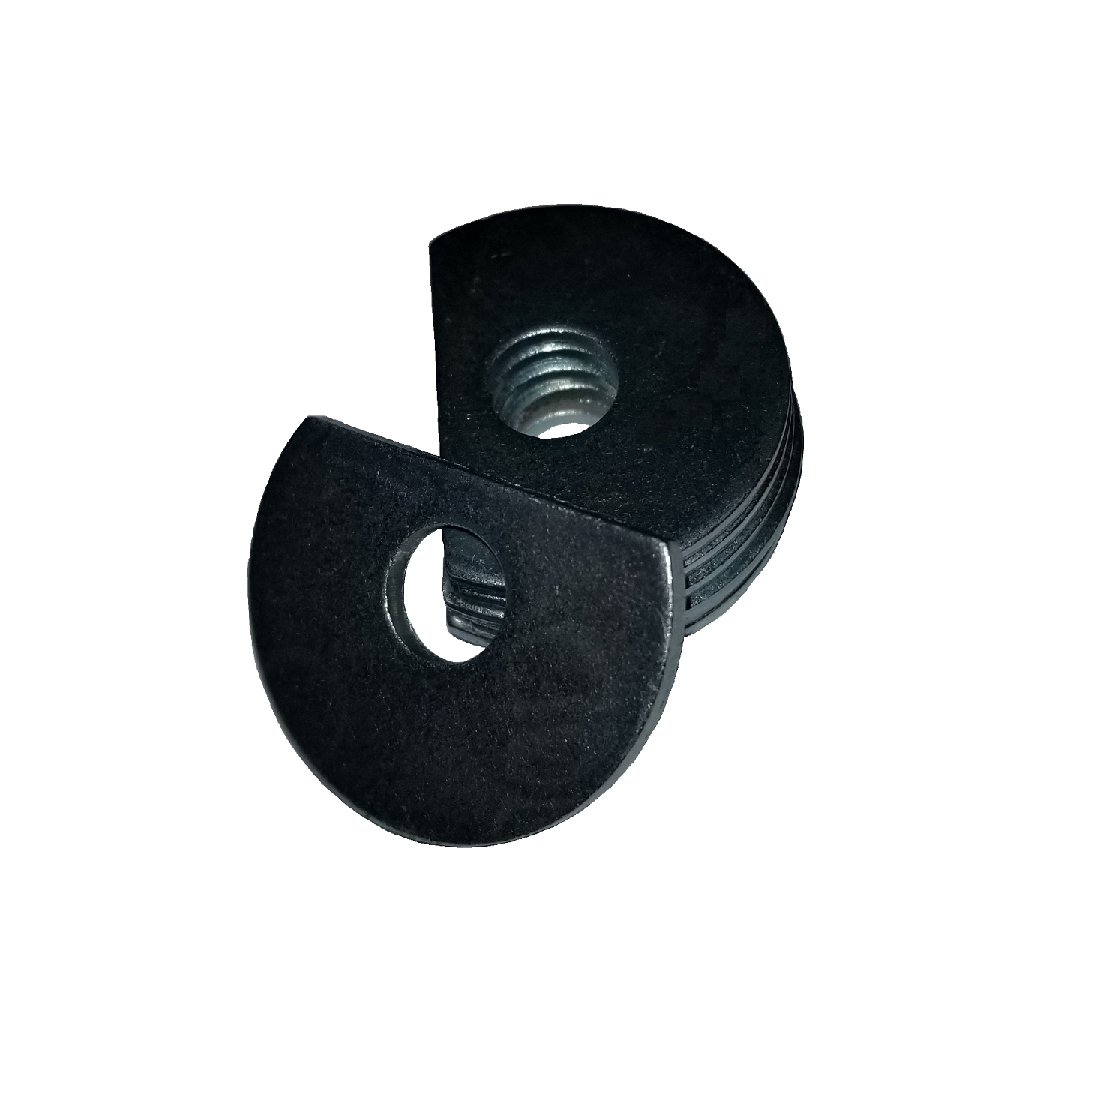 Clipped OD Washer - 0.125 ID, 0.375 OD, 0.030 Thick, Stainless - 300 Series